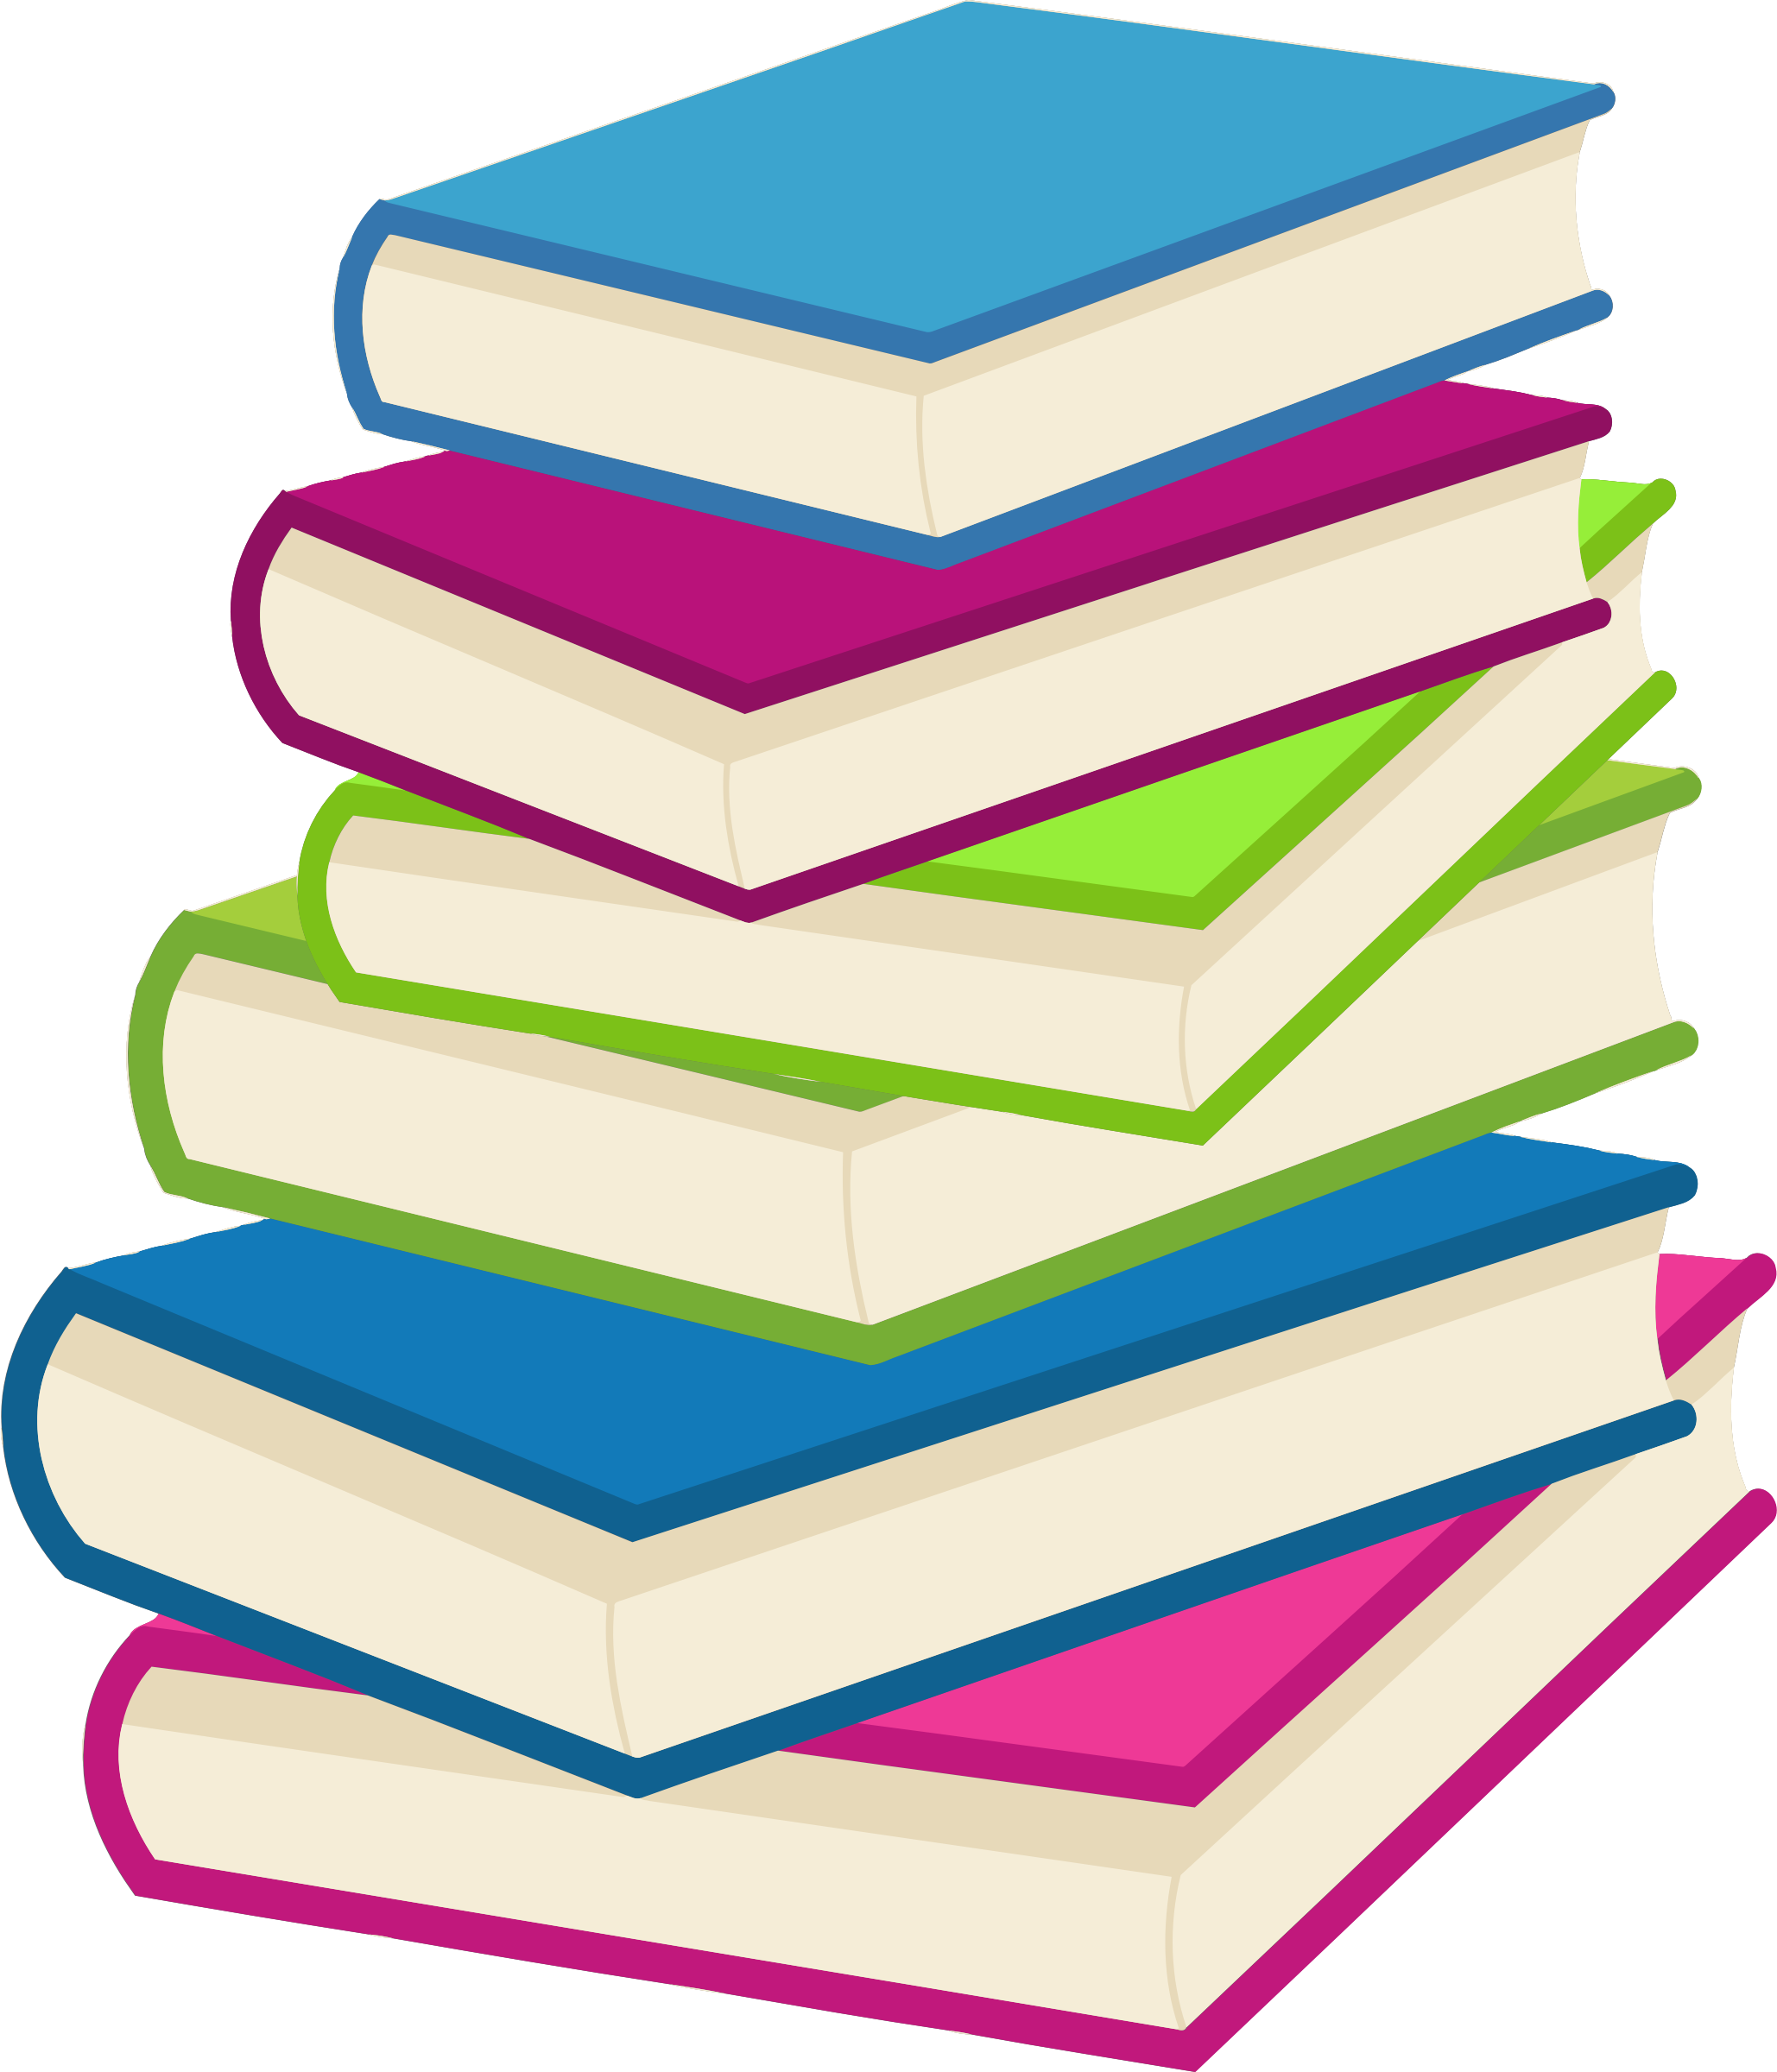 Clipart - Stack of books 2